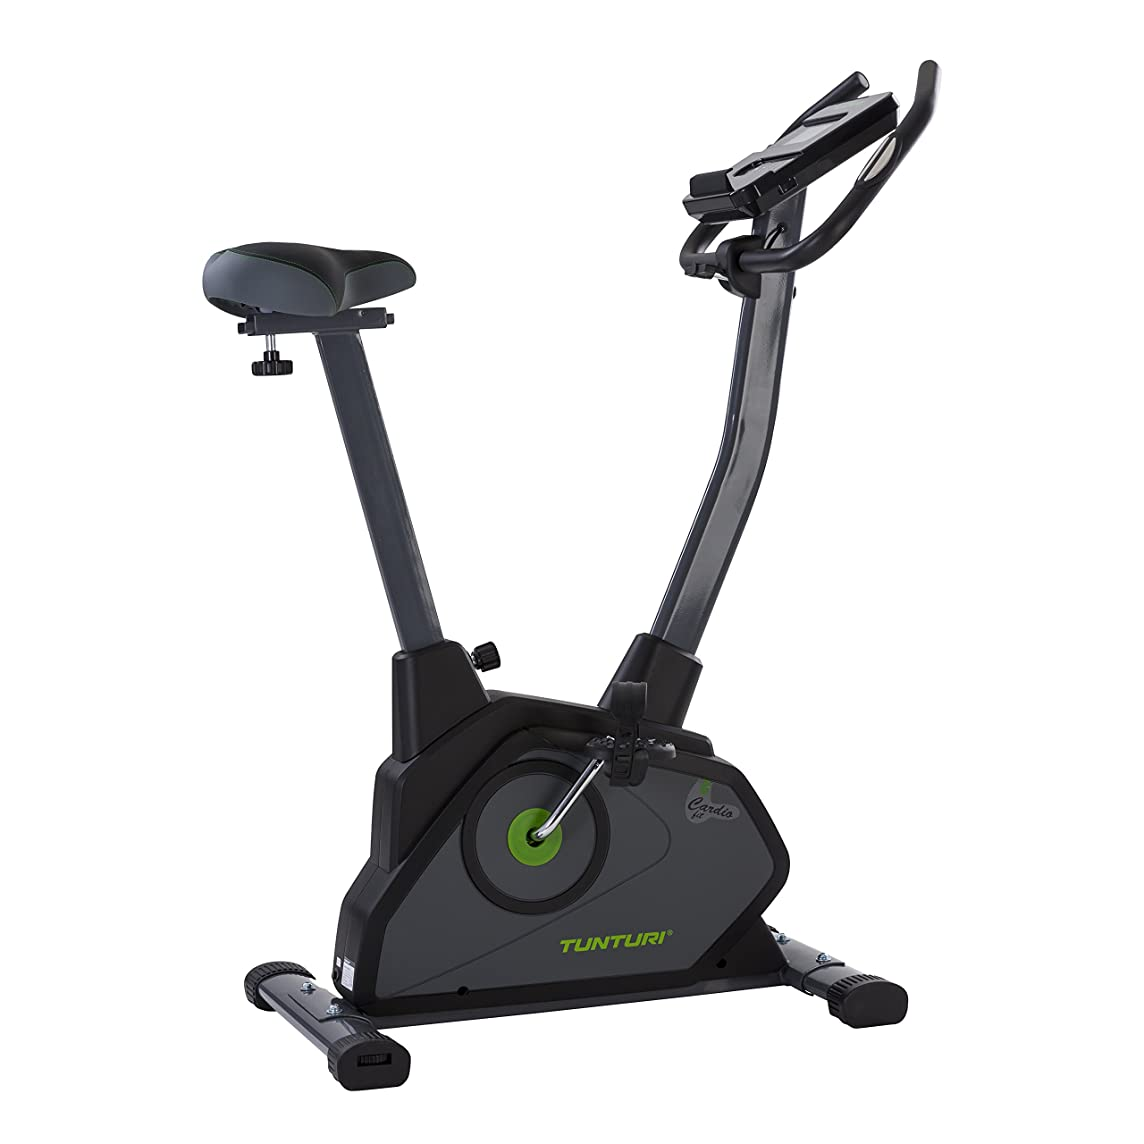 Tunturi Cardio Fit Series Upright Exercise Bike